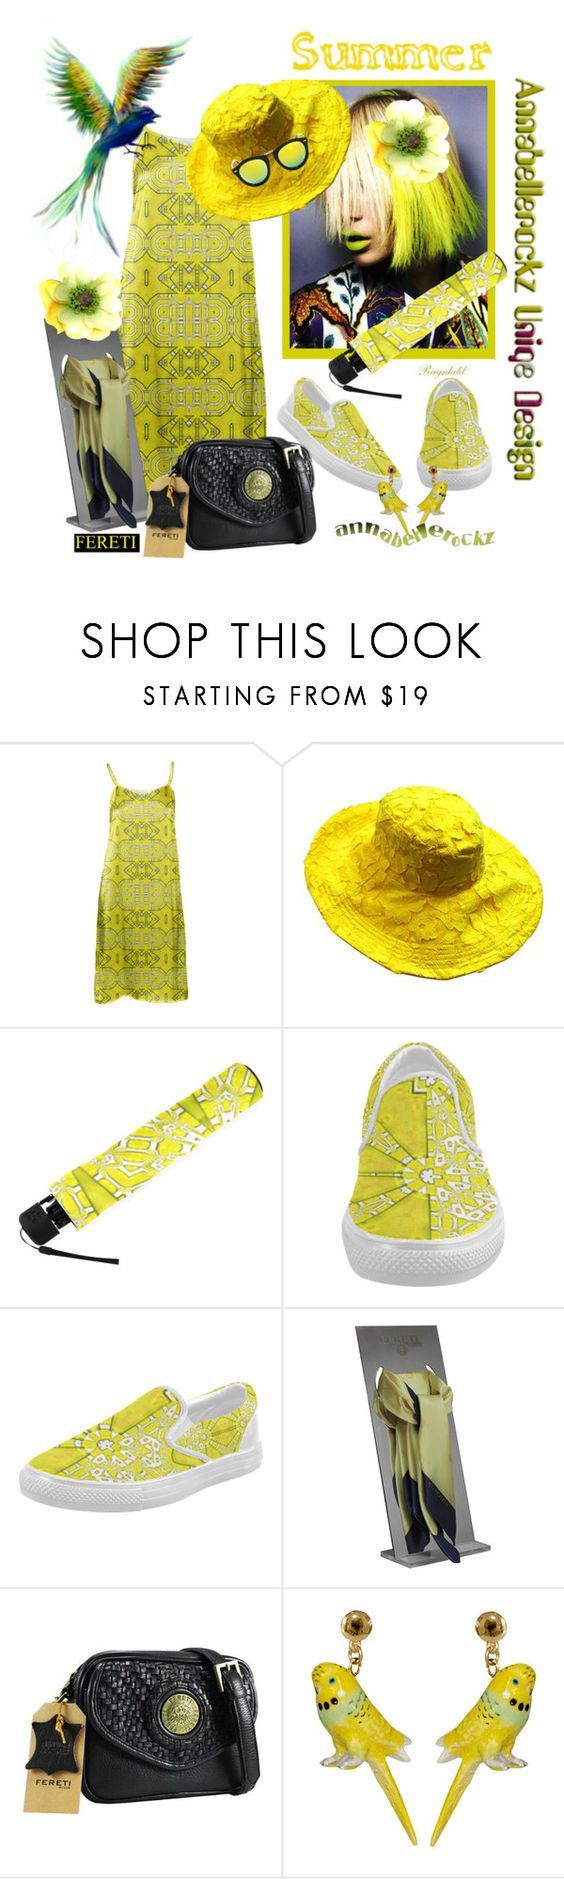 """Contest! Summerfun in Ragnhild says Post it!"" by ragnh-mjos ❤ liked on Polyvore featuring Nach Bijoux, outfit, annabellerockz and Fereti"